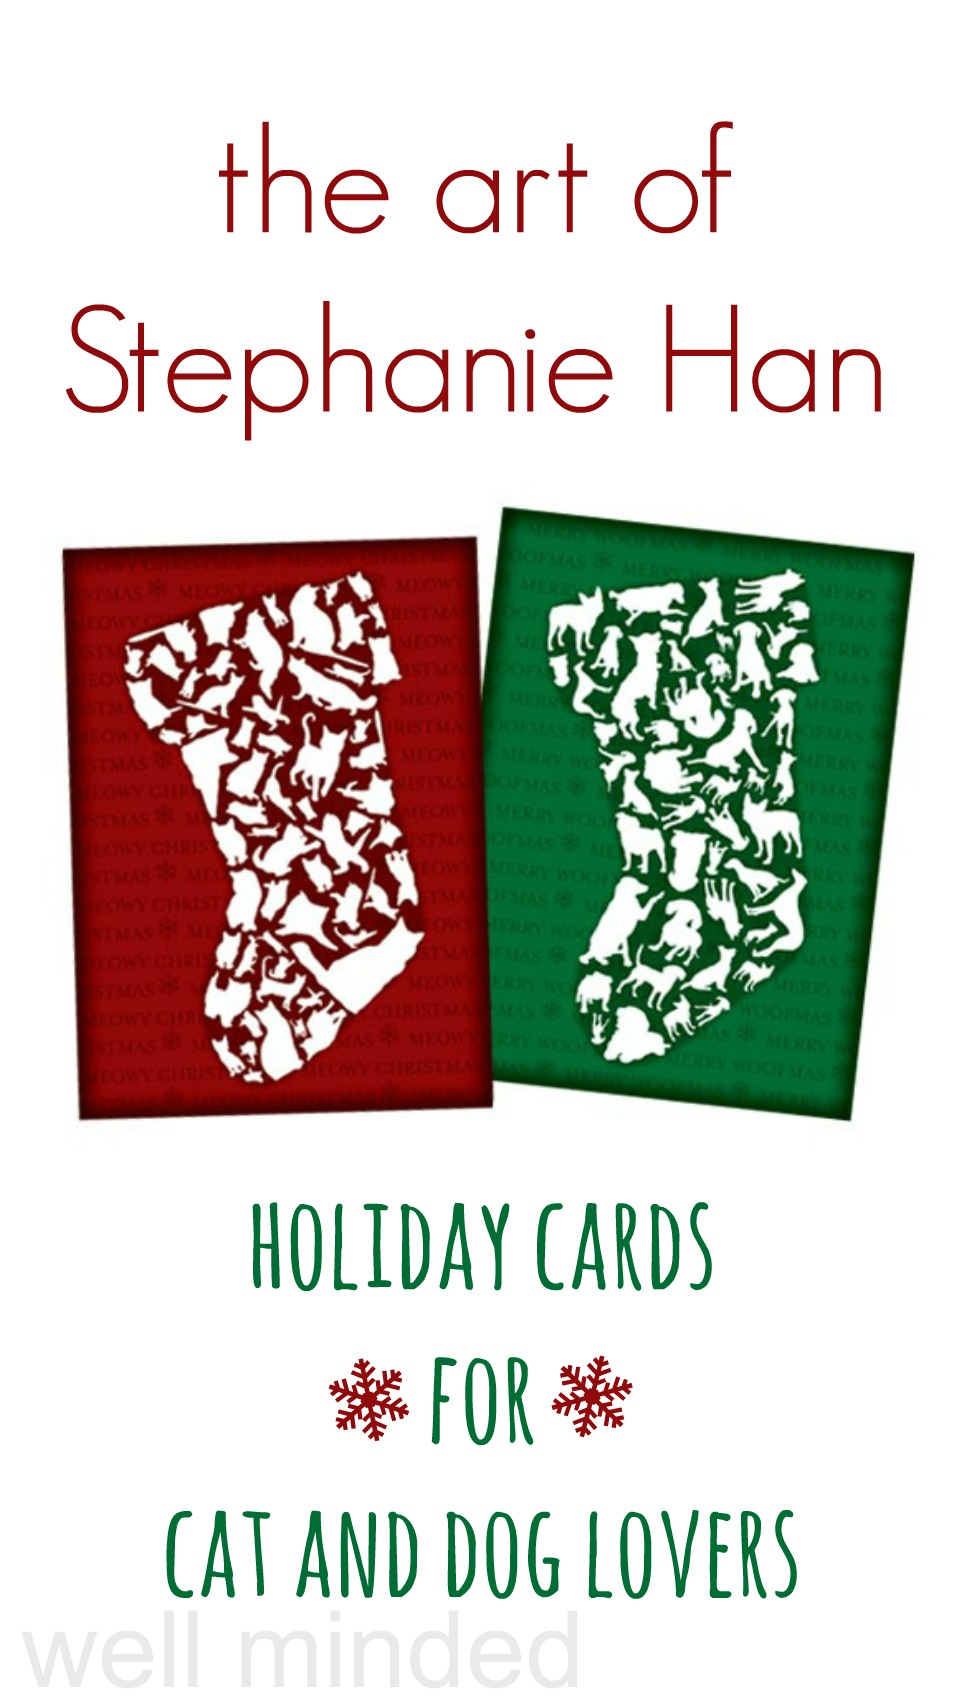 The Art of Stephanie Han: Holiday Cards for Cat and Dog Lovers–Well Minded